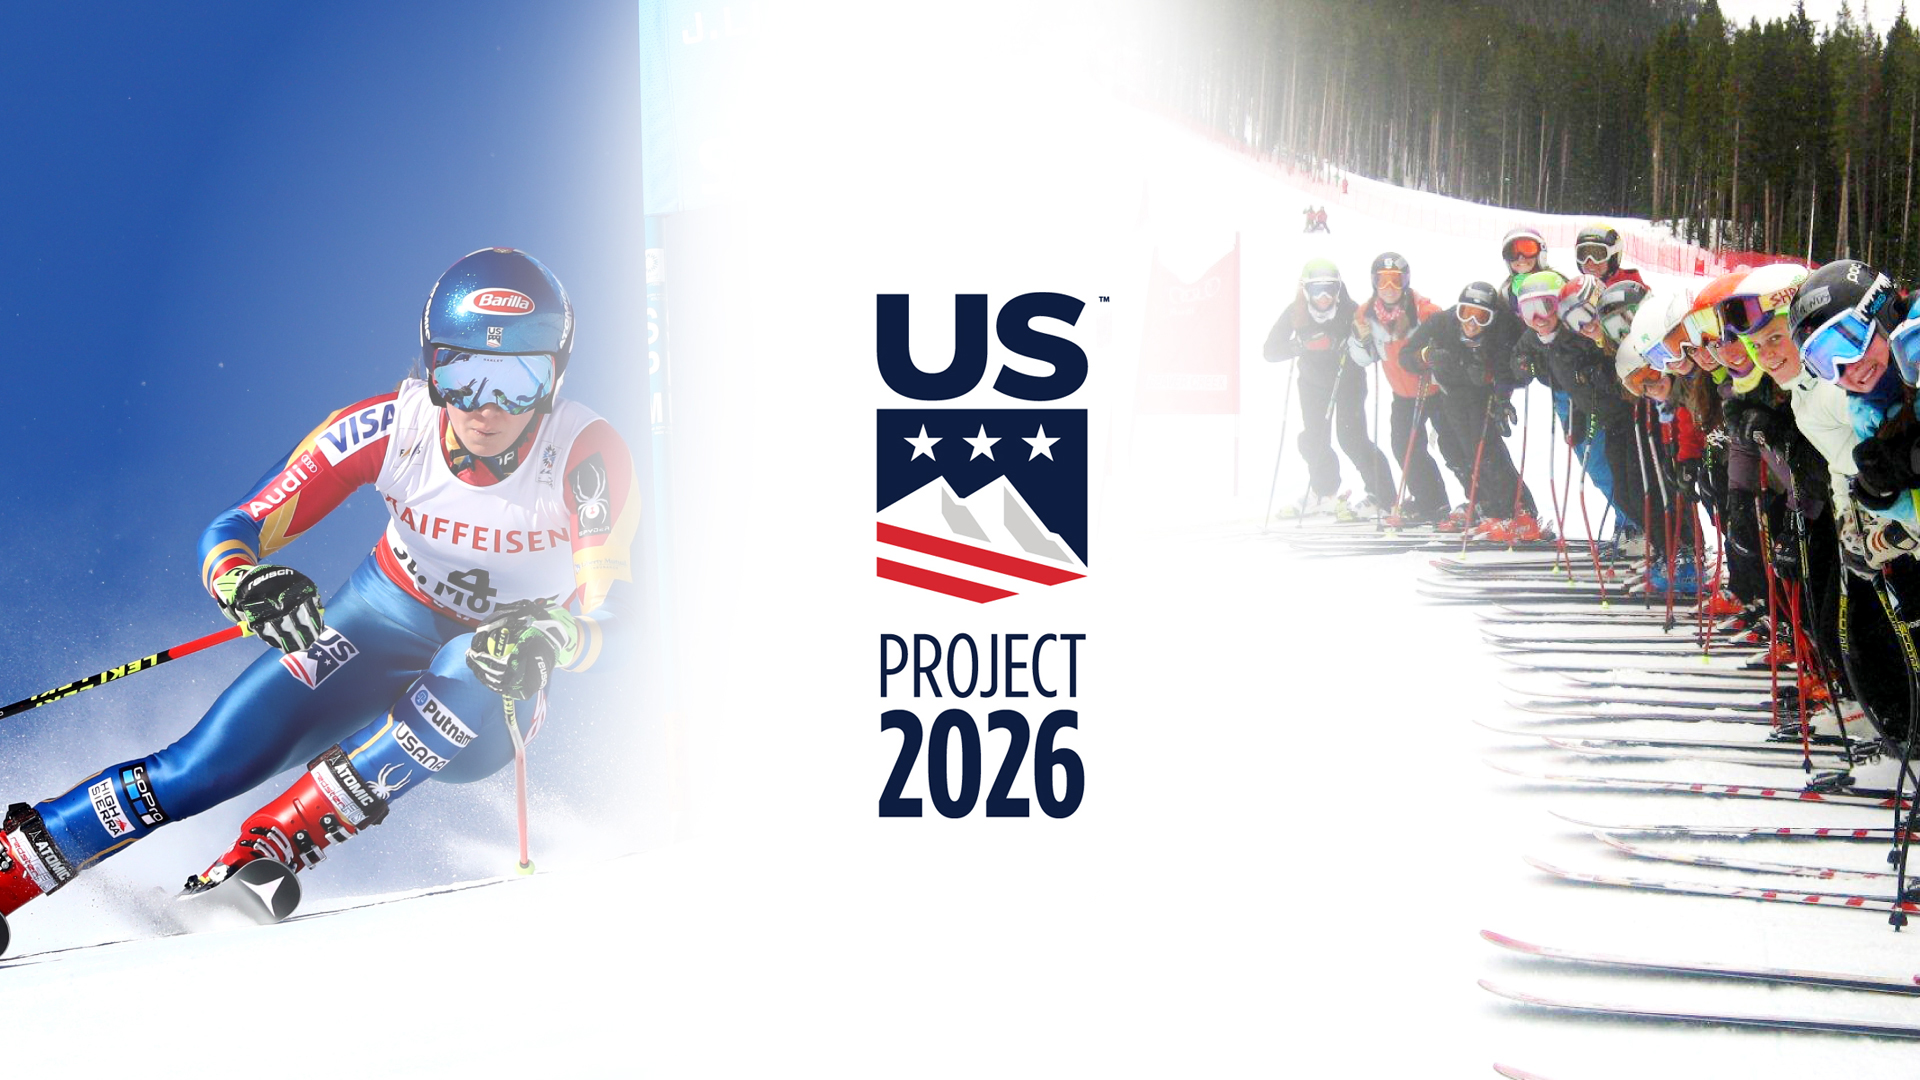 Future Look at Ski Racing Development